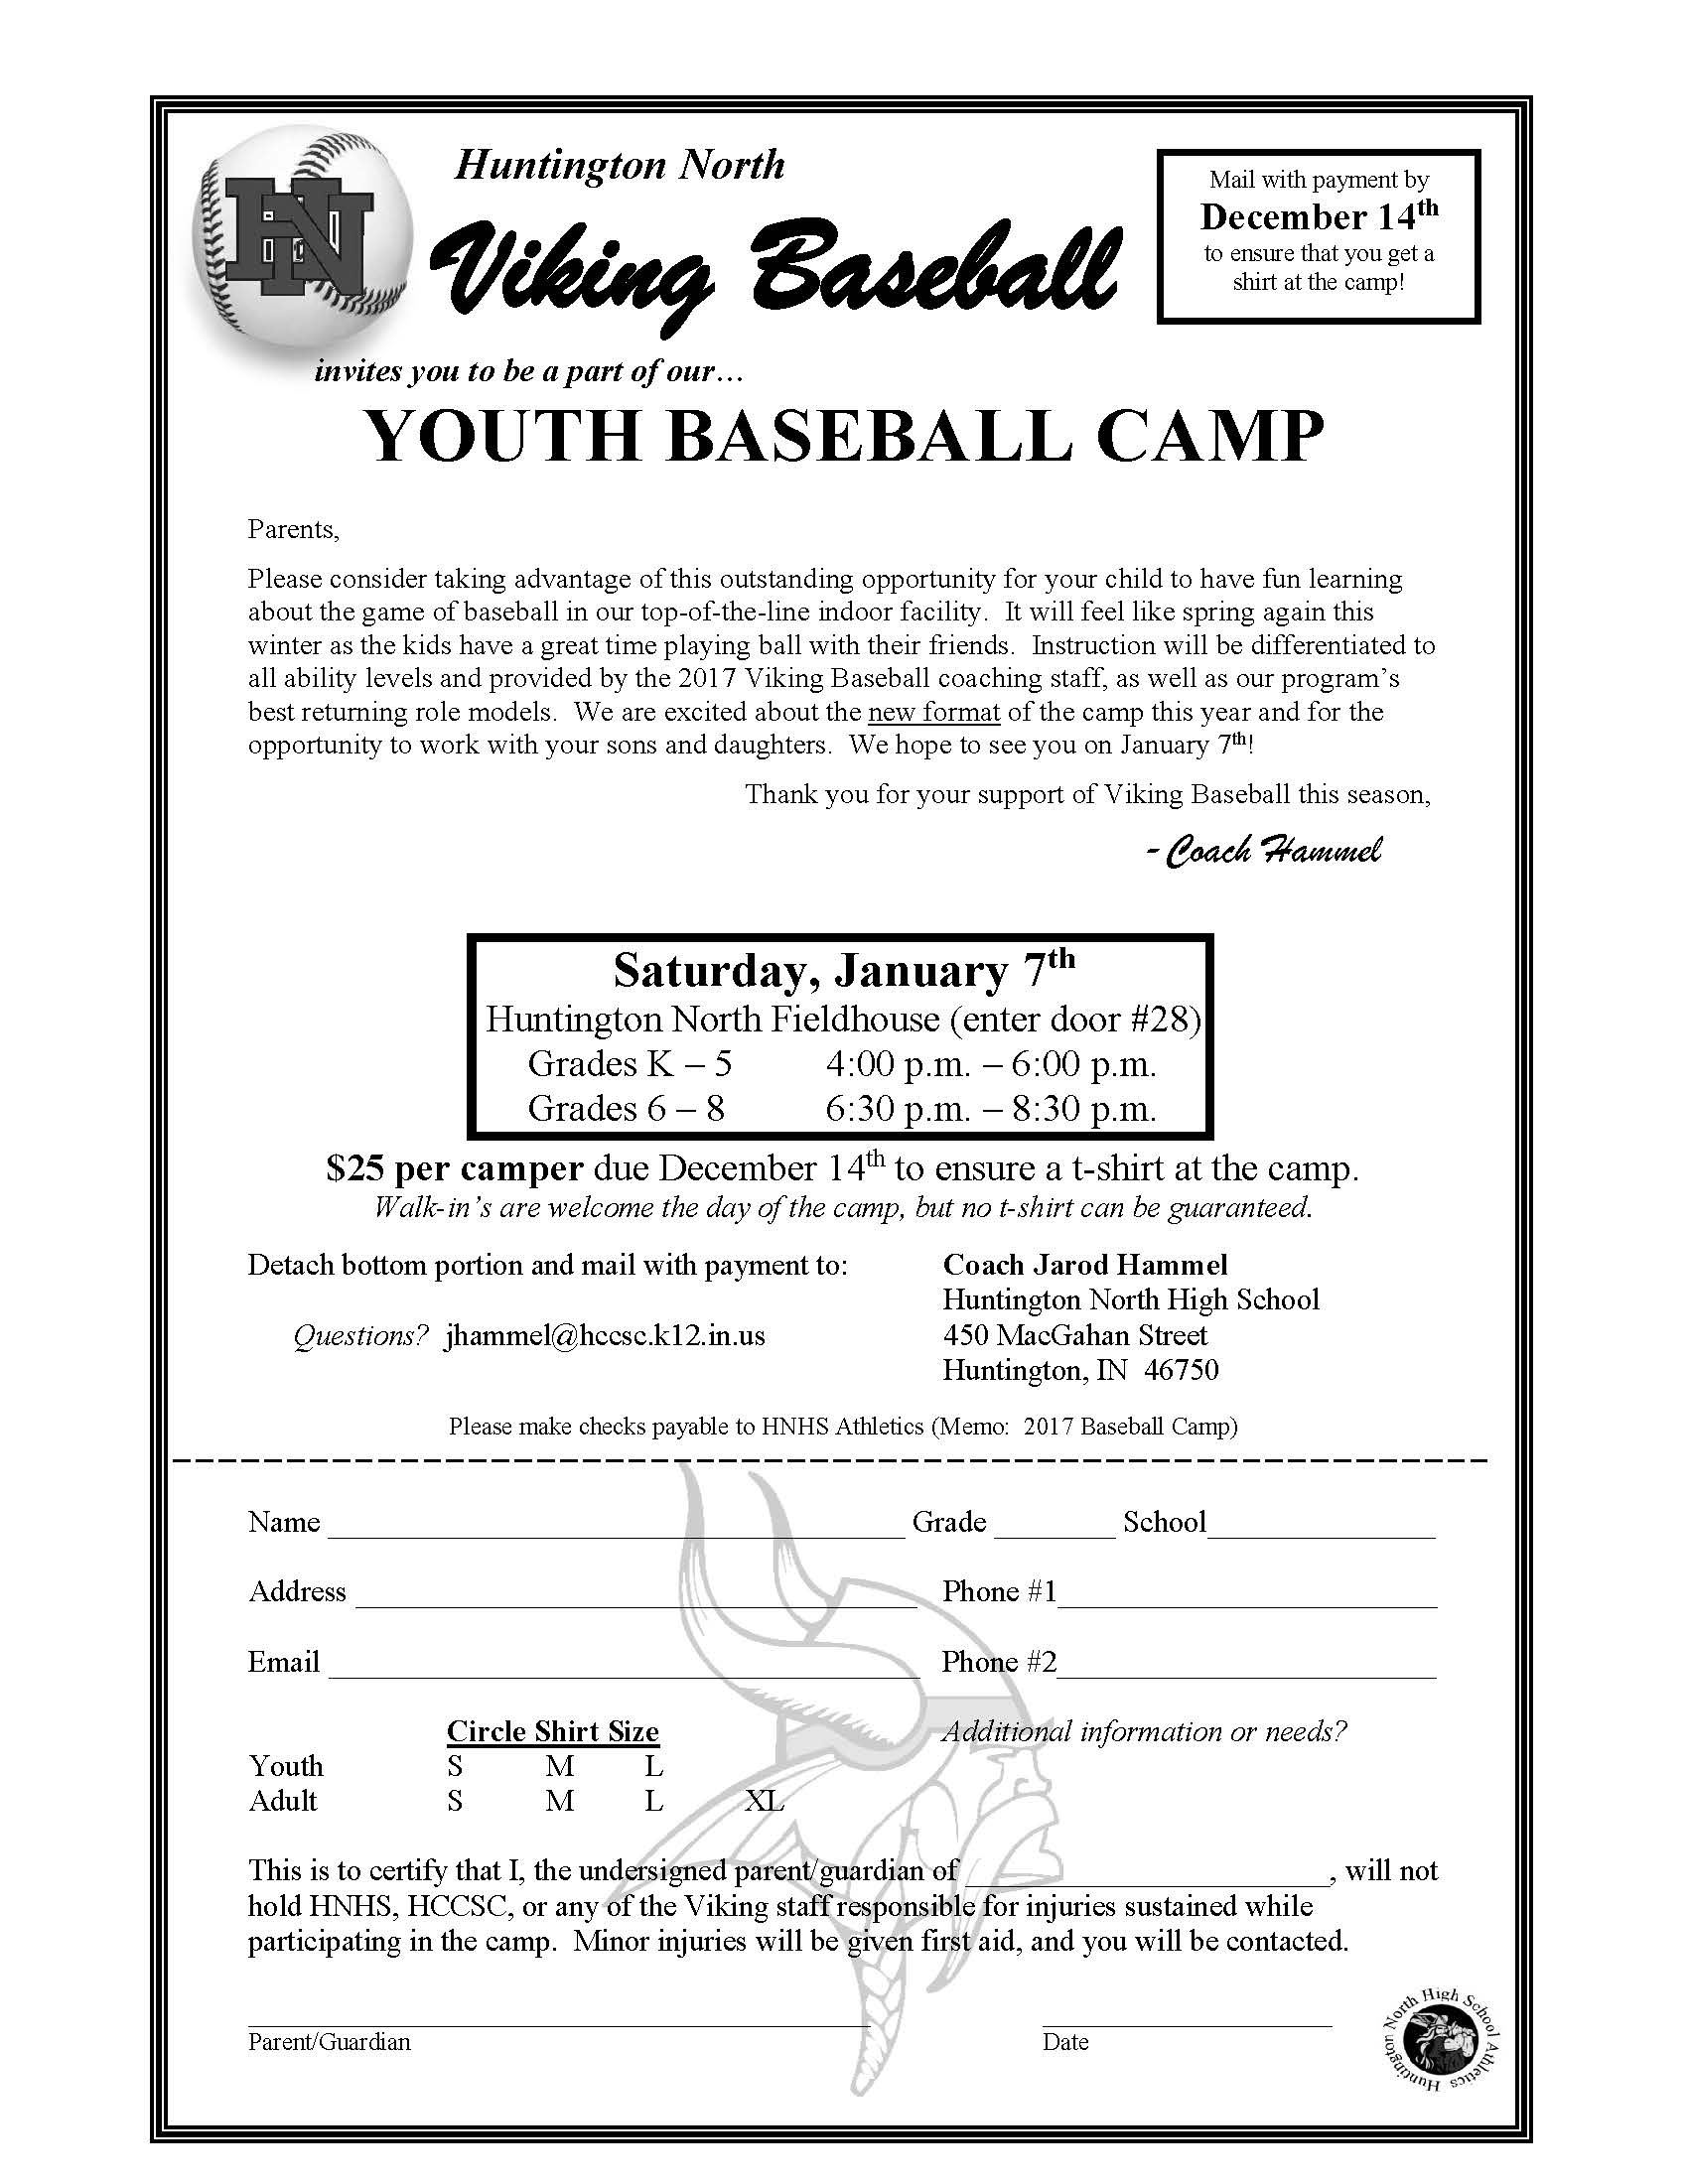 Viking Baseball Youth Camp